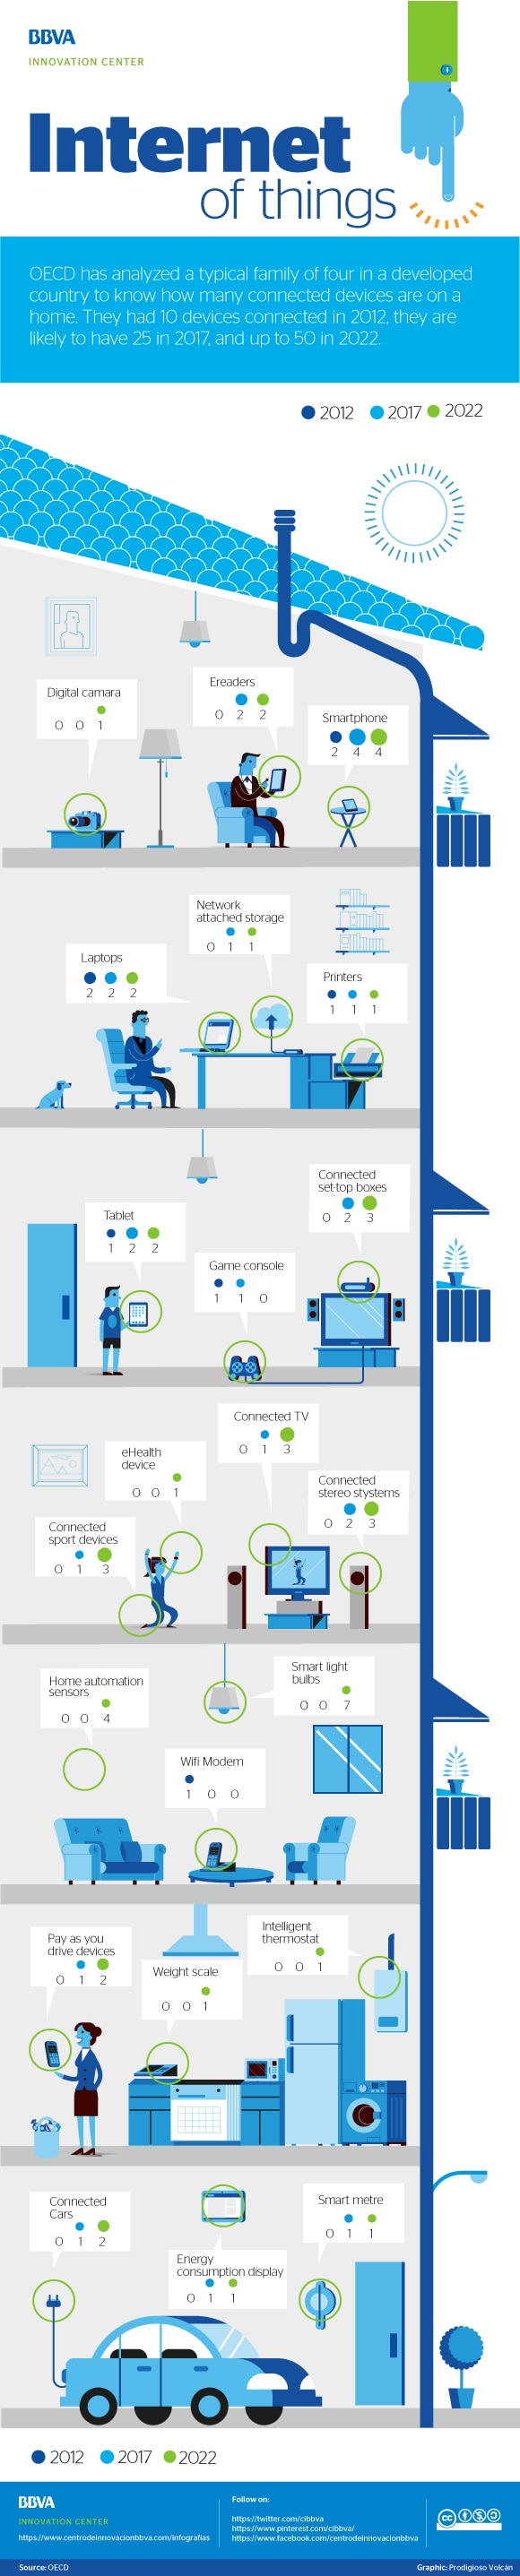 Infographic: Internet of Things: connected home